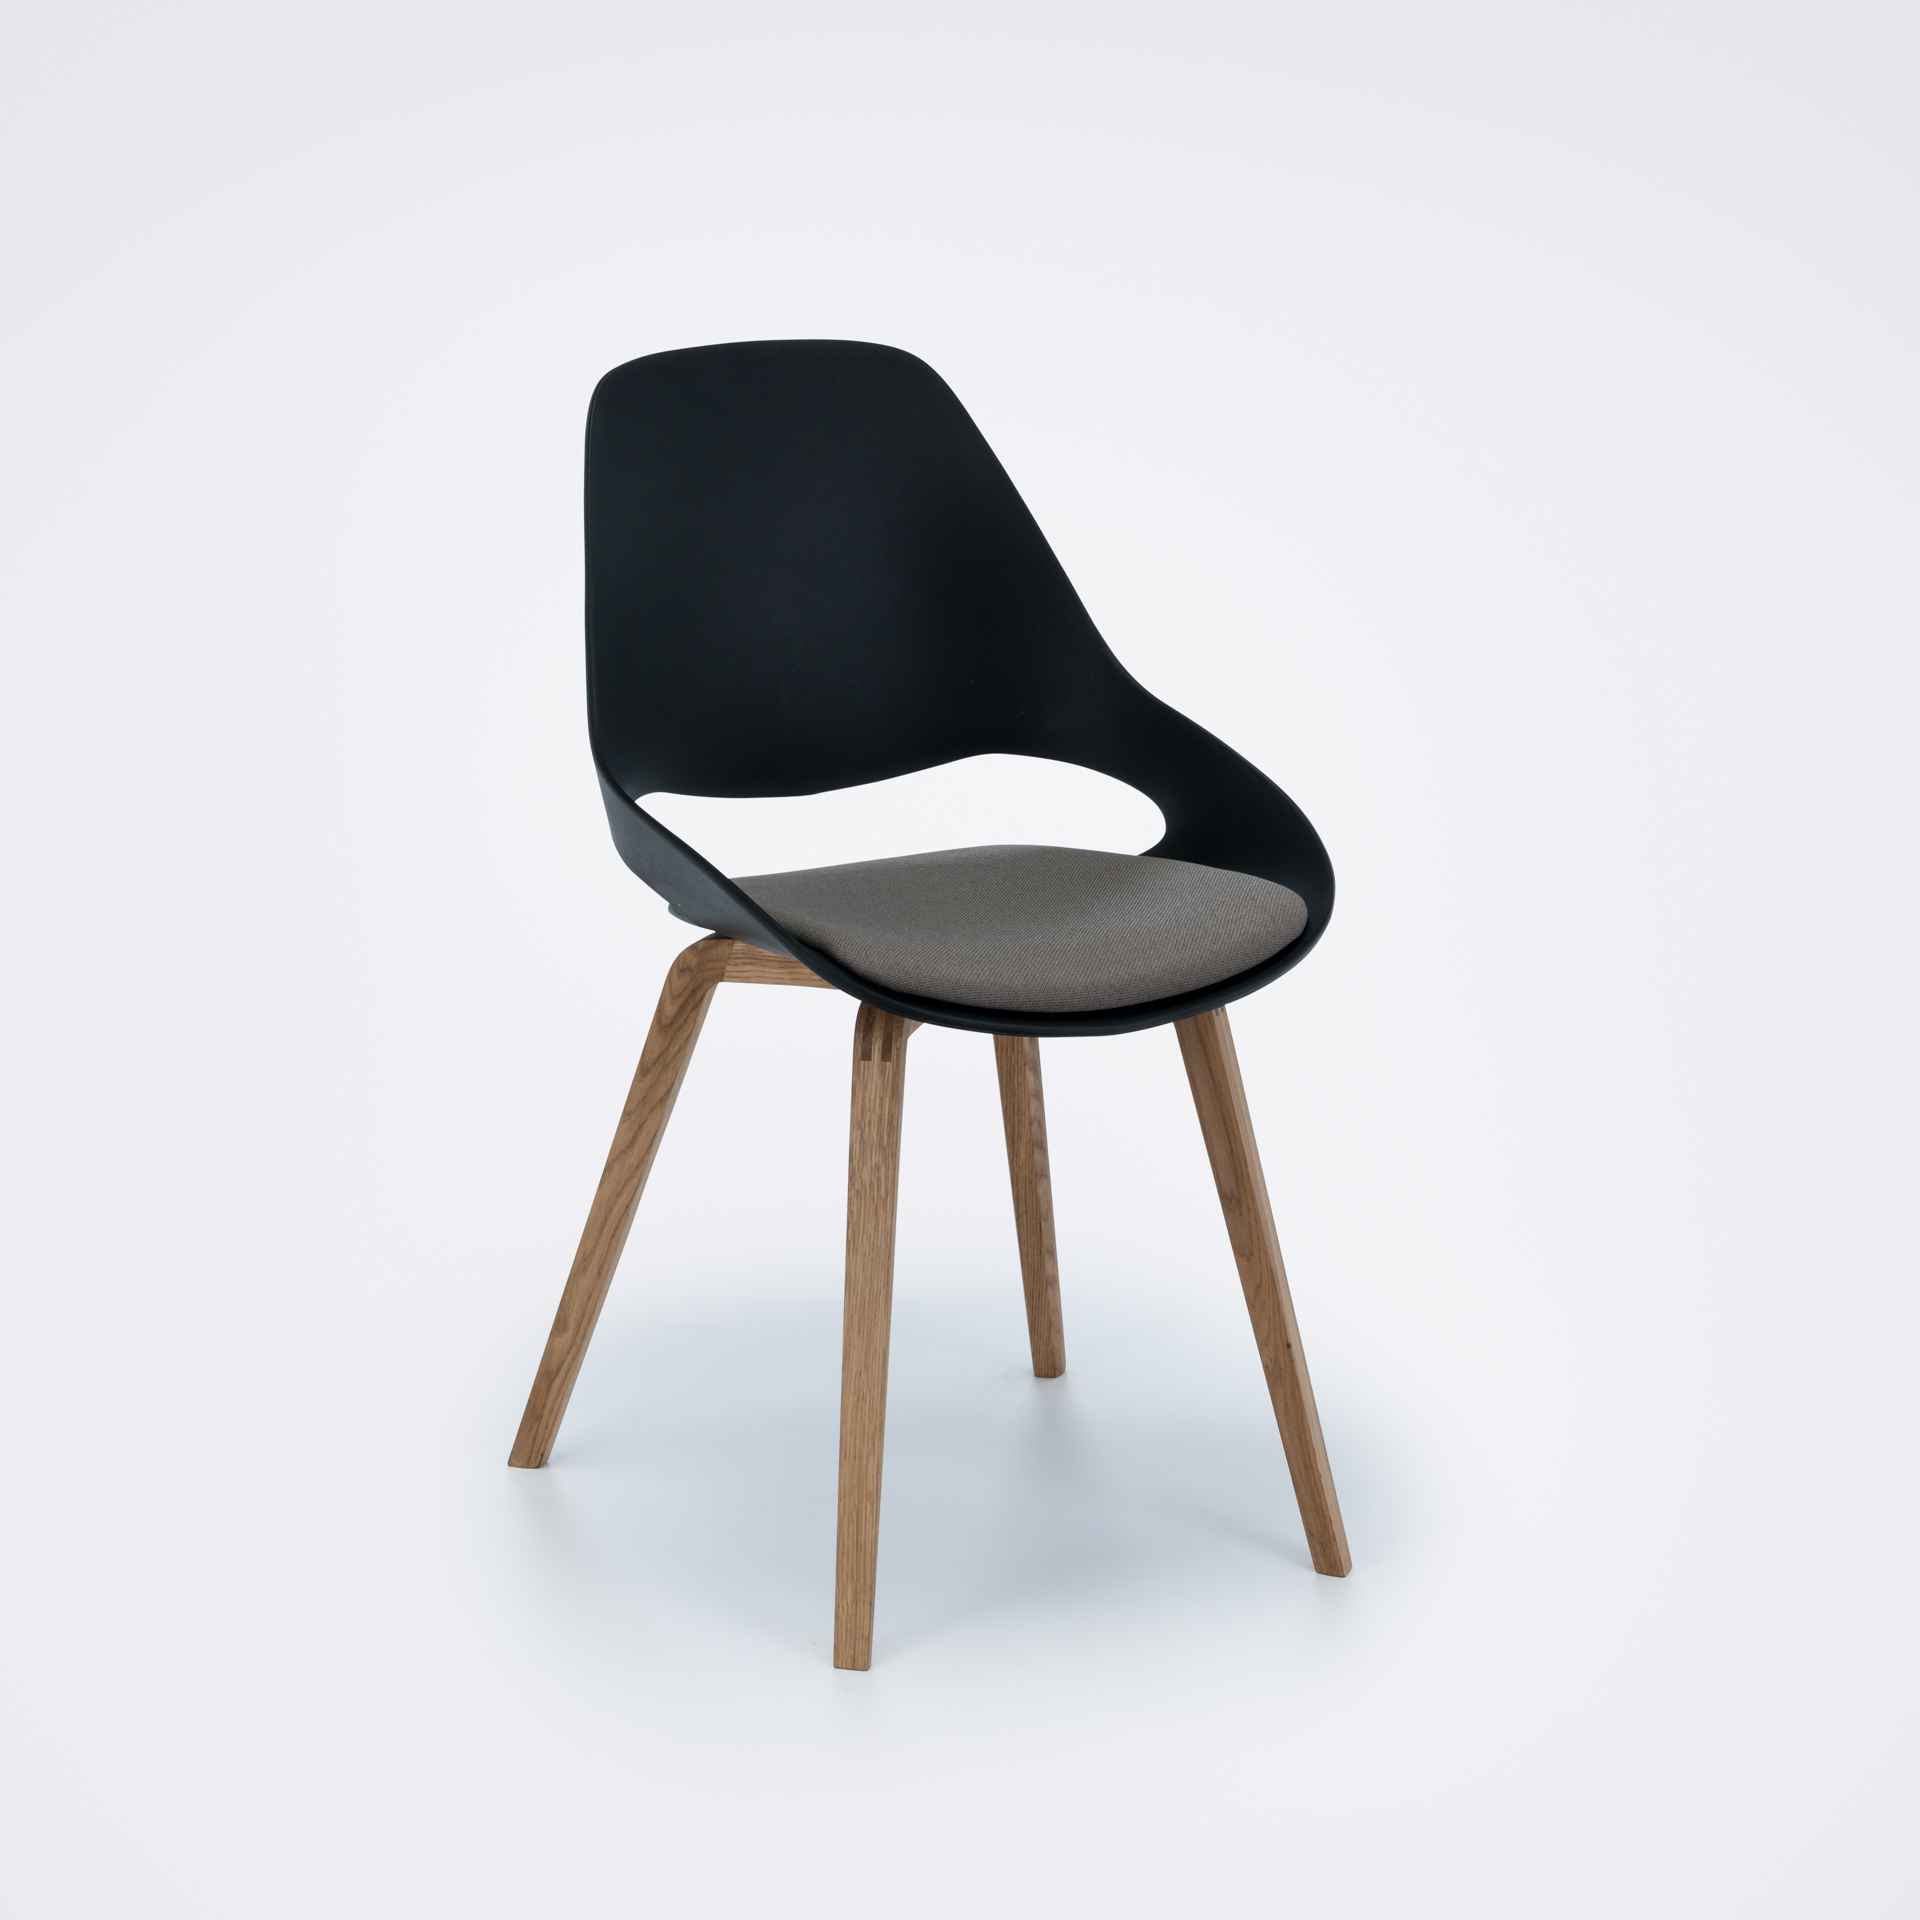 DINING CHAIR // PADDED SEAT // Black/clay // Oiled Oak legs